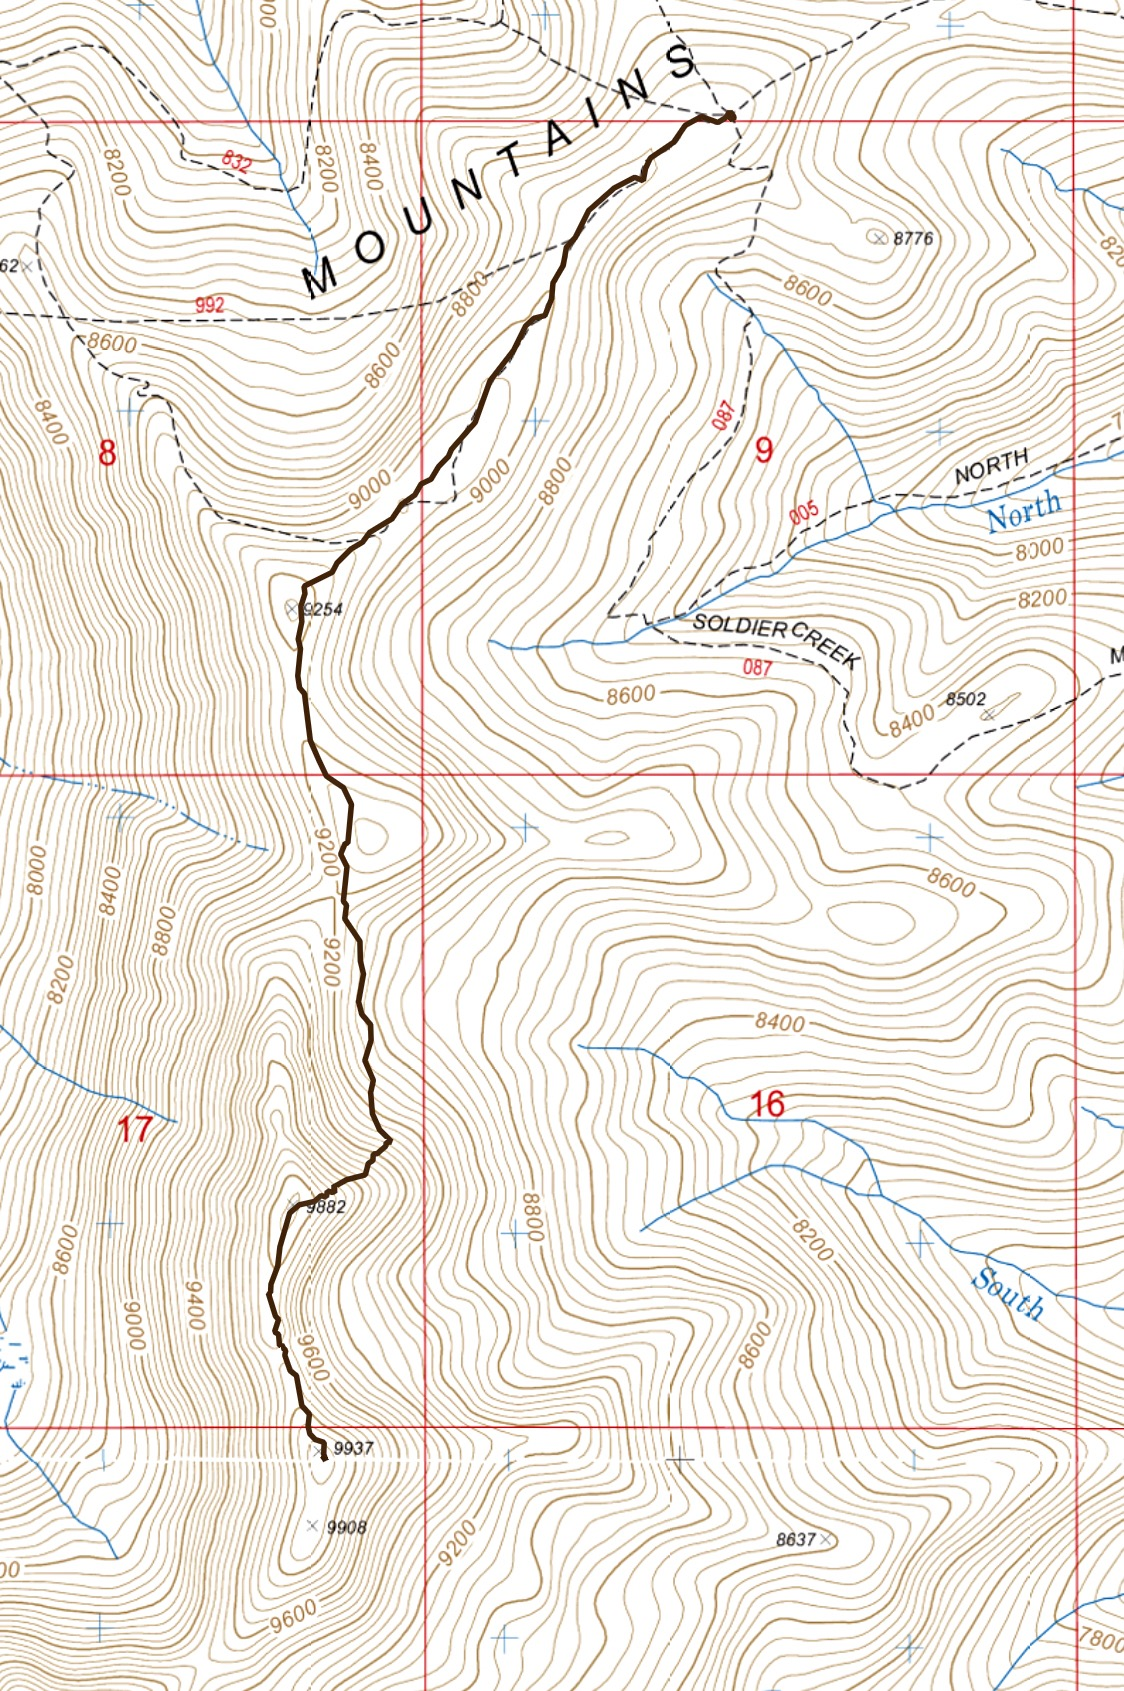 My GPS track from the north ridge to the summit. Stats: 5.4 miles with 1,200 of elevation gain round trip.